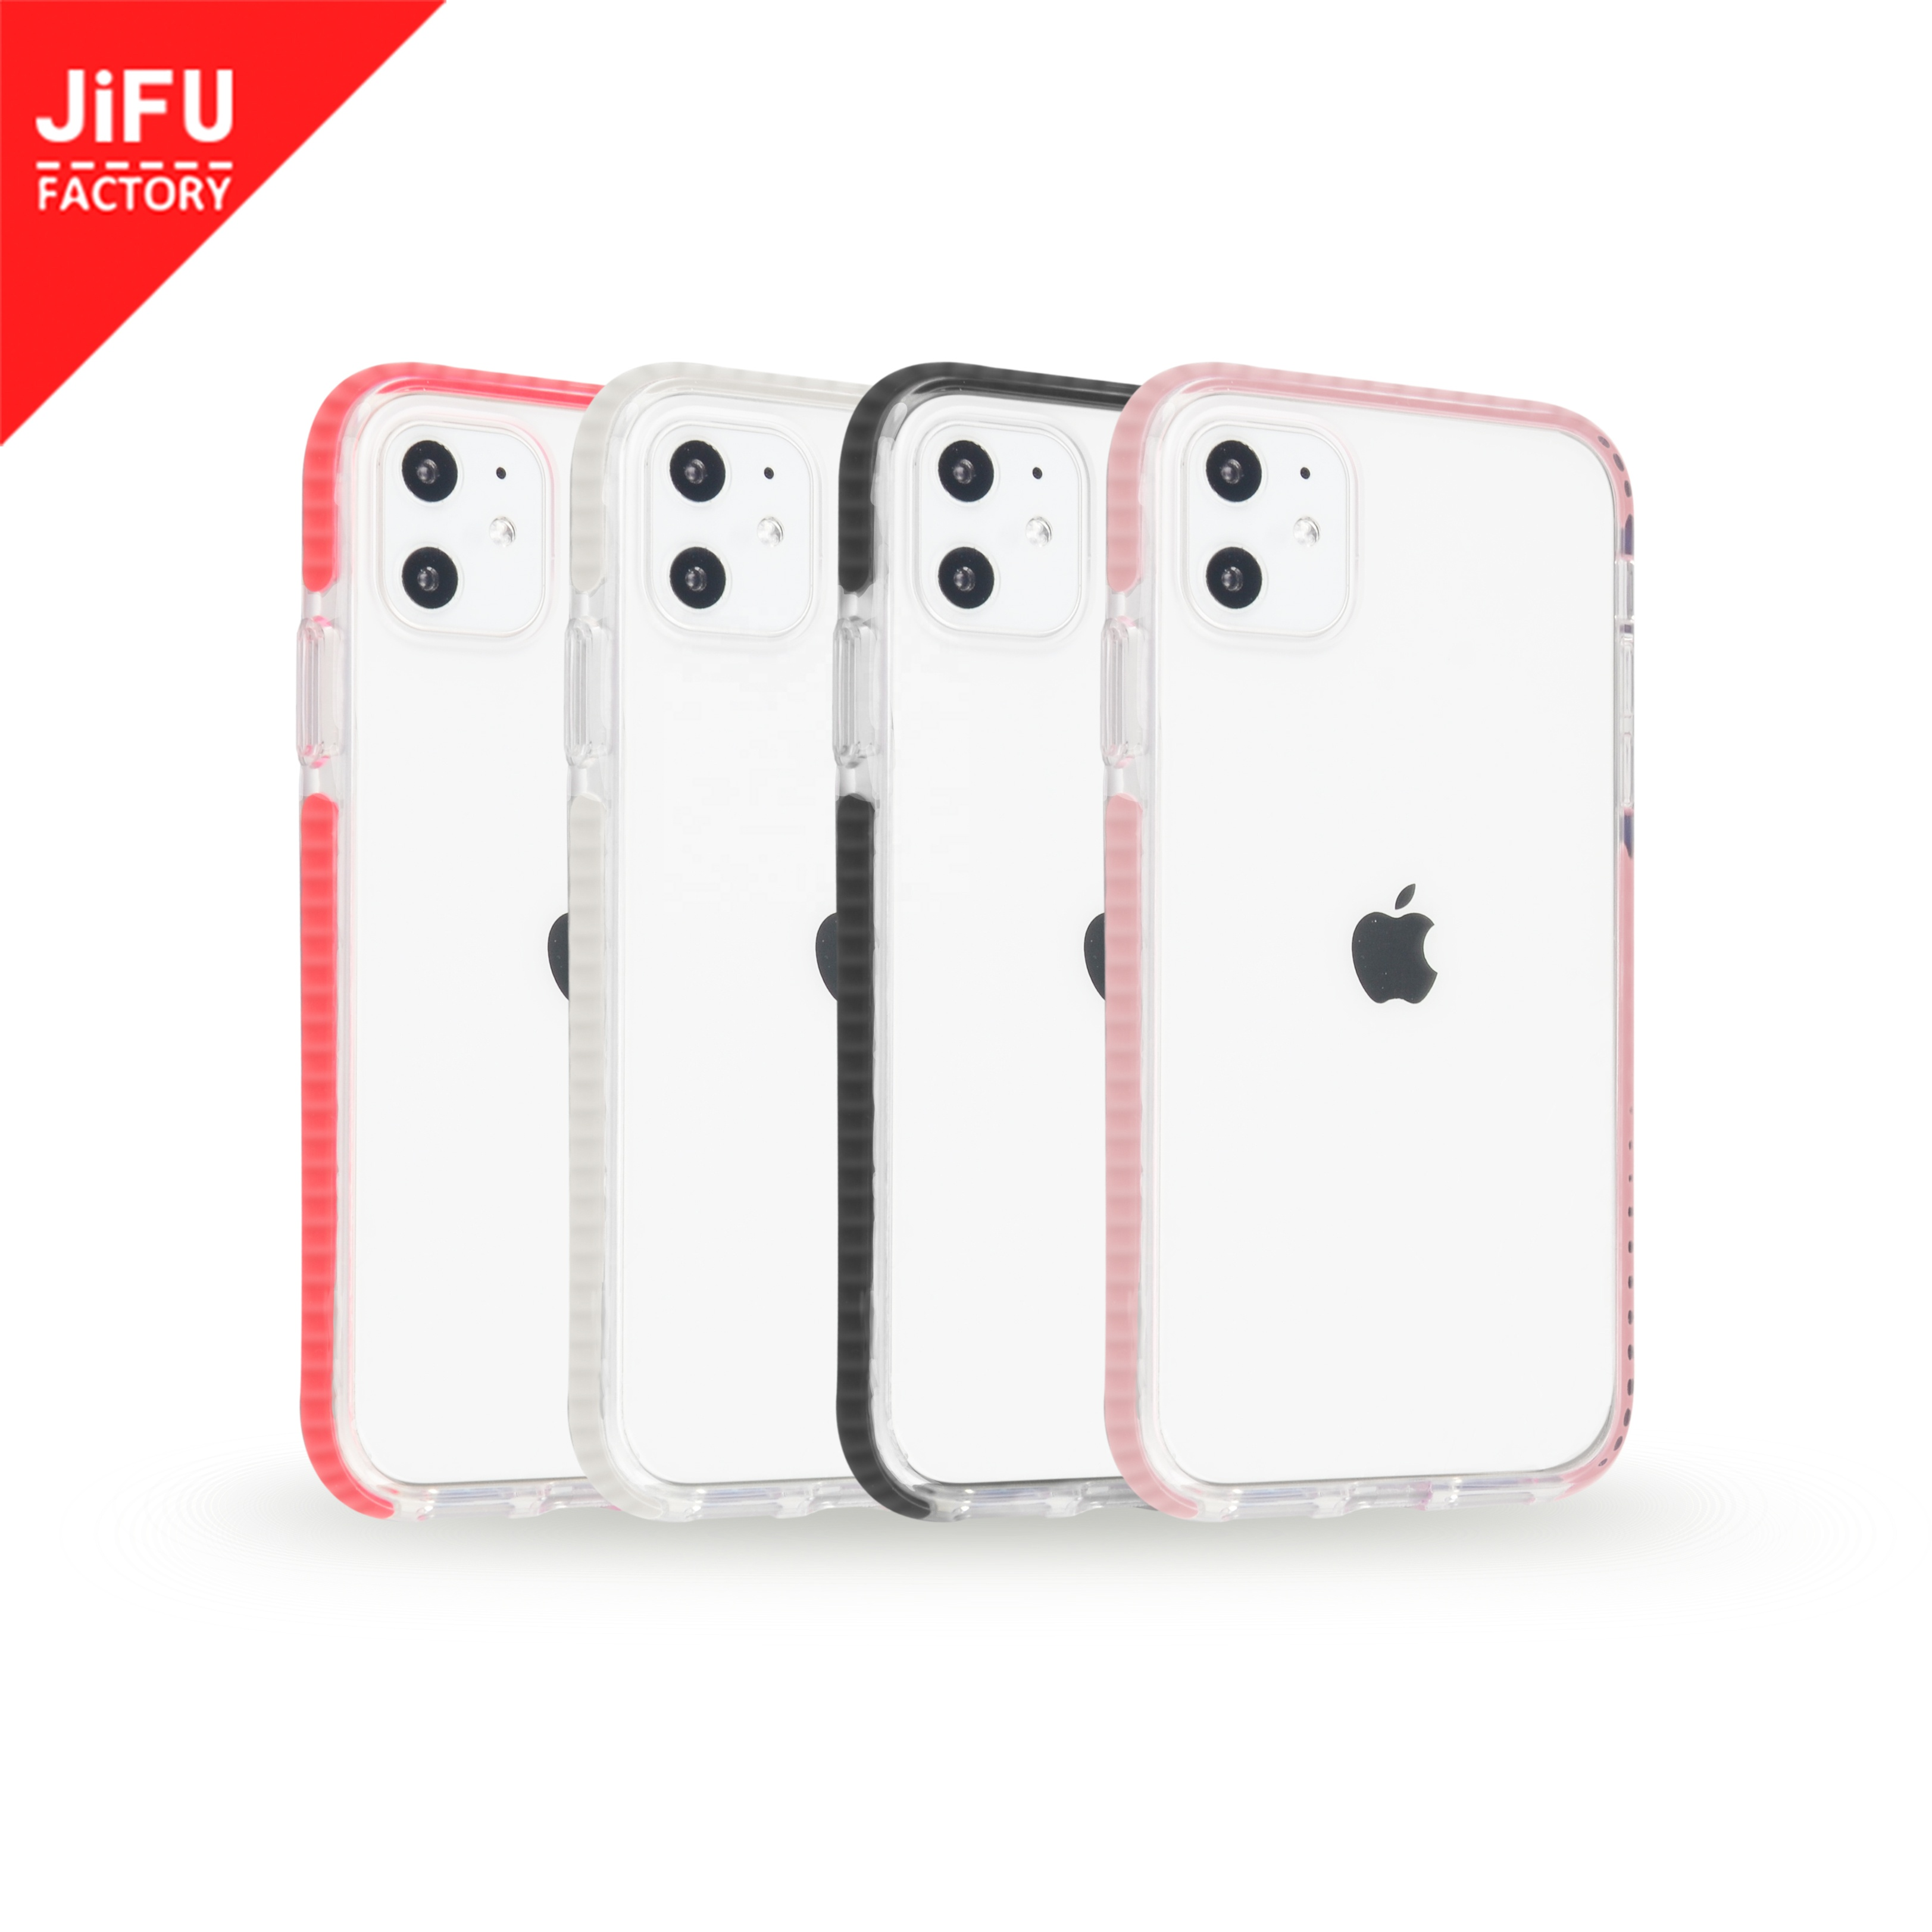 Hot sell transparent PC+TPU <strong>phone</strong> cover two-tone impact <strong>phone</strong> <strong>case</strong> for iPhone11/11 Pro/11 Pro Max